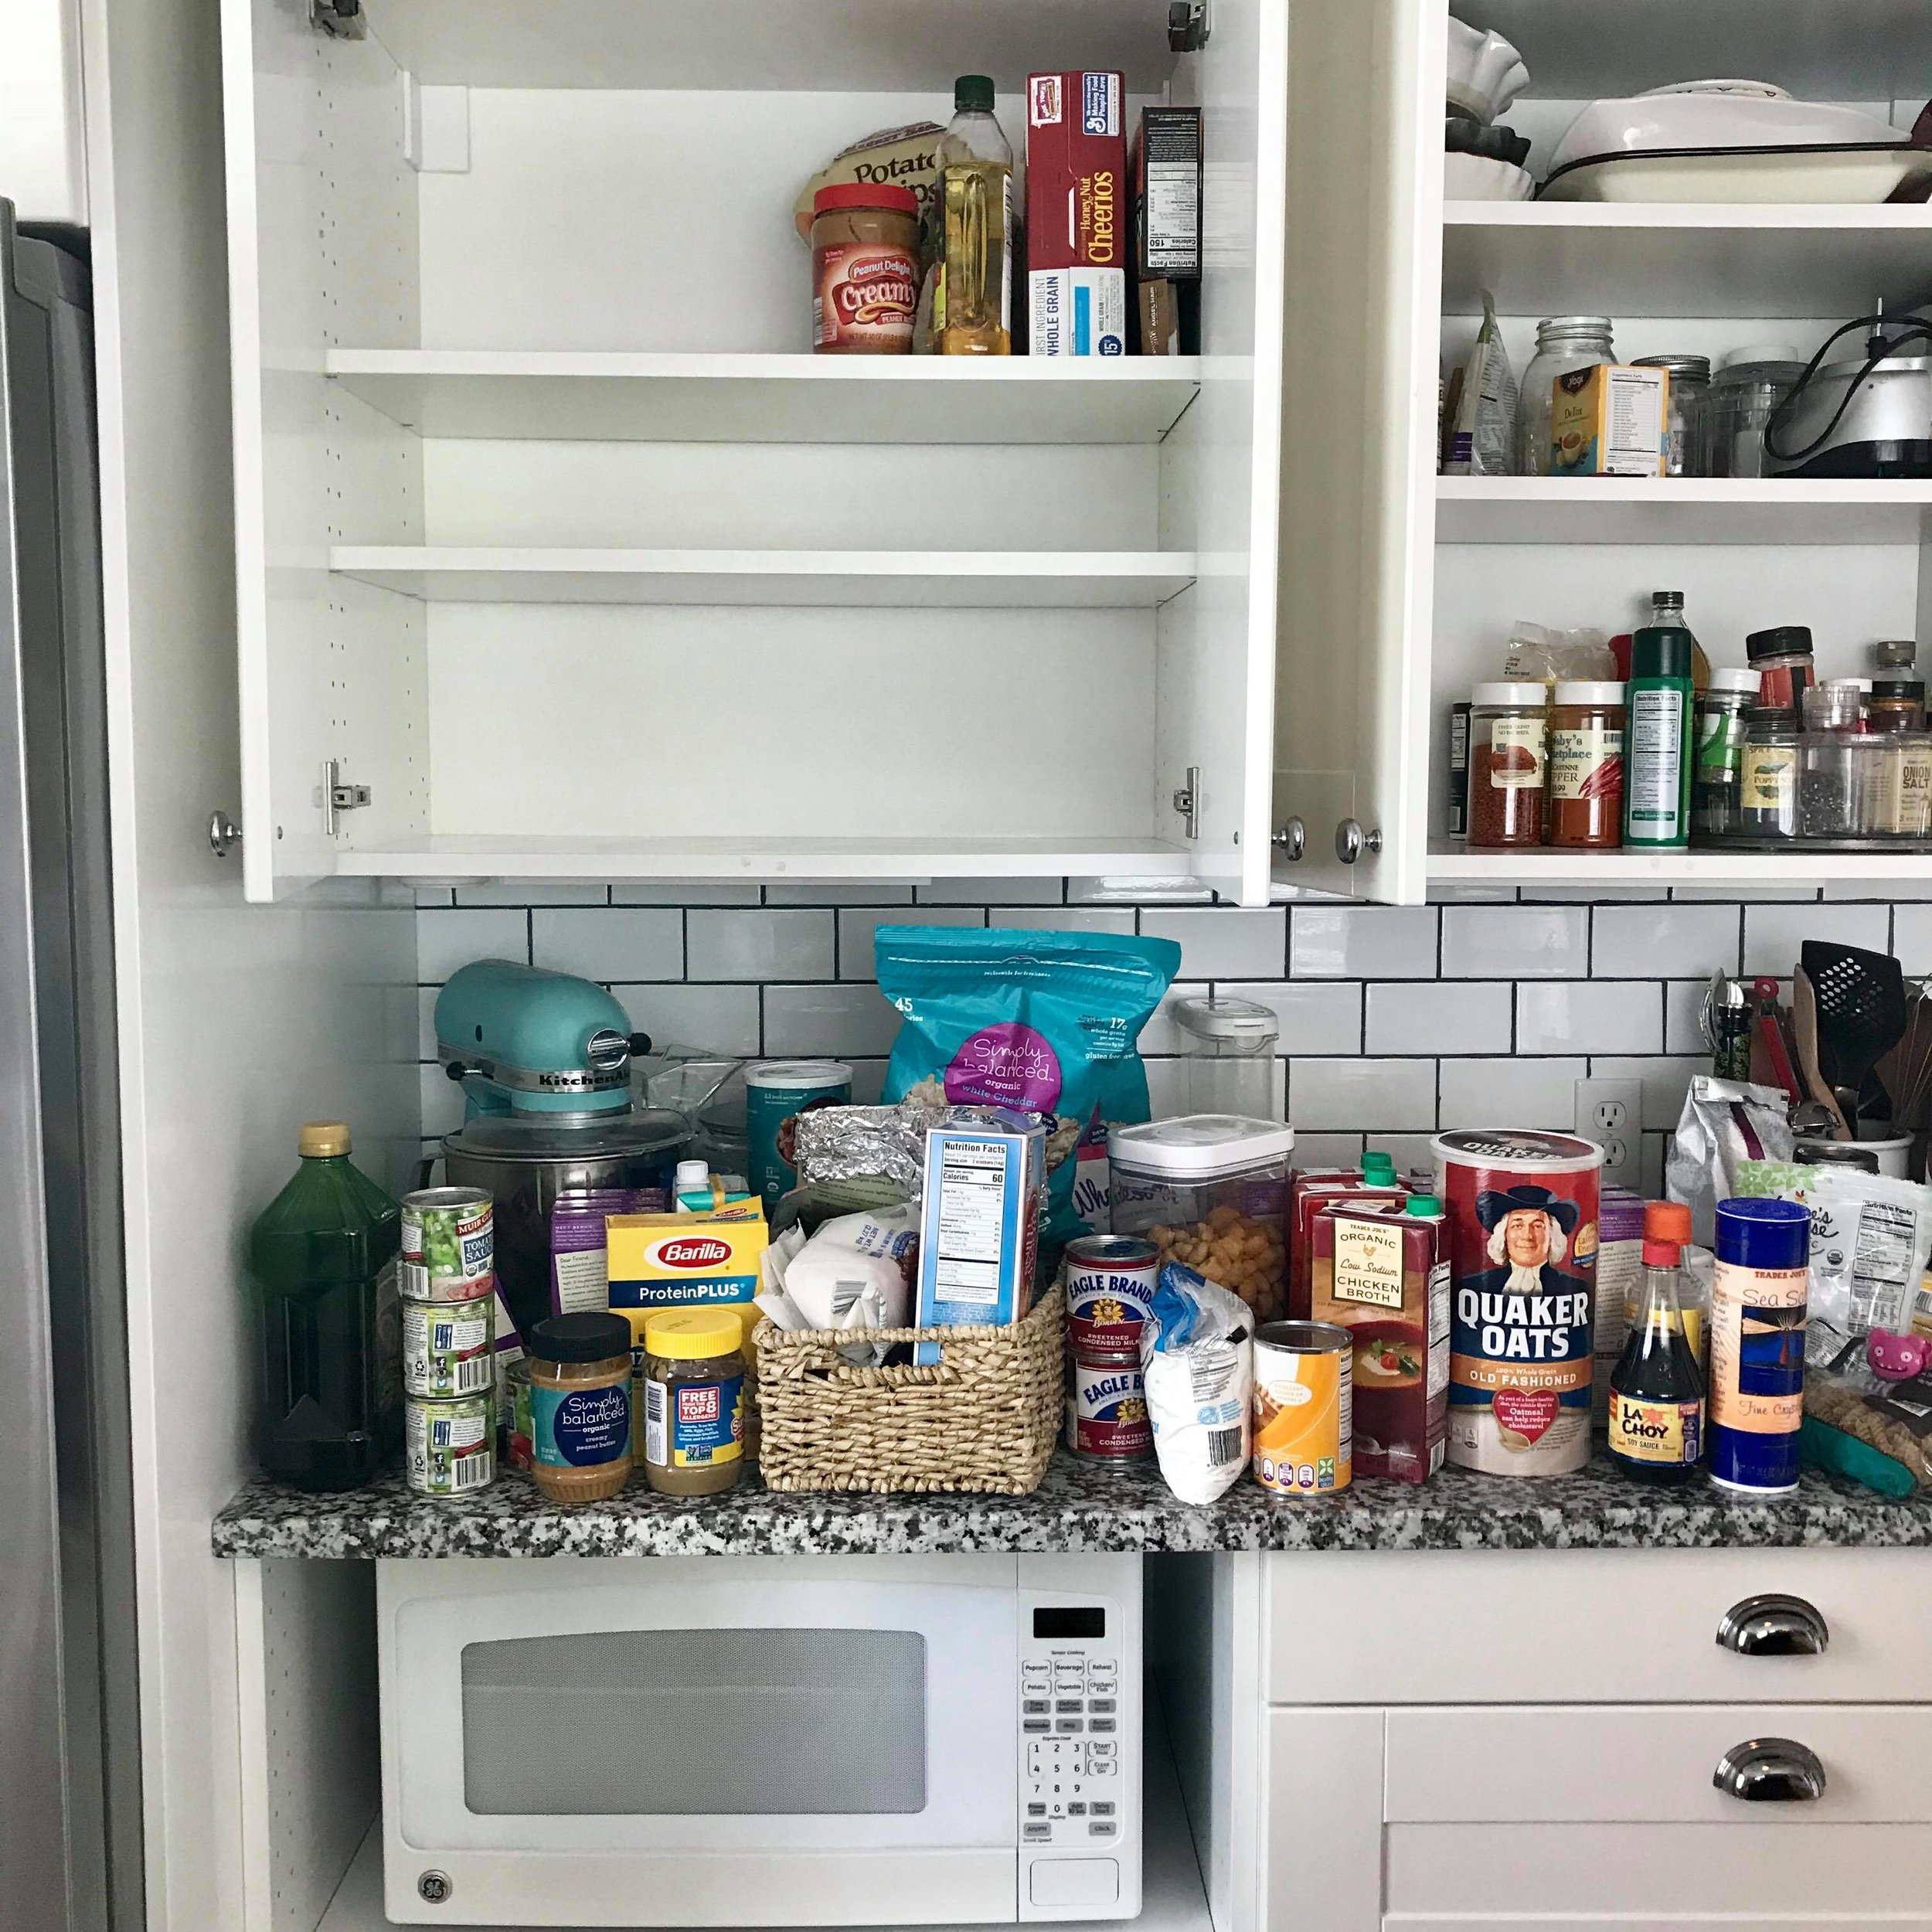 before - My plan here was1 / to empty out our pantry cabinets. 2 / Toss expired food & giveaway food we don't use.3 / Identify foods I should have in my pantry (particularly ones that I could stock up on & not need to constantly rebuy)4 / Put things back in a way that is easy to access